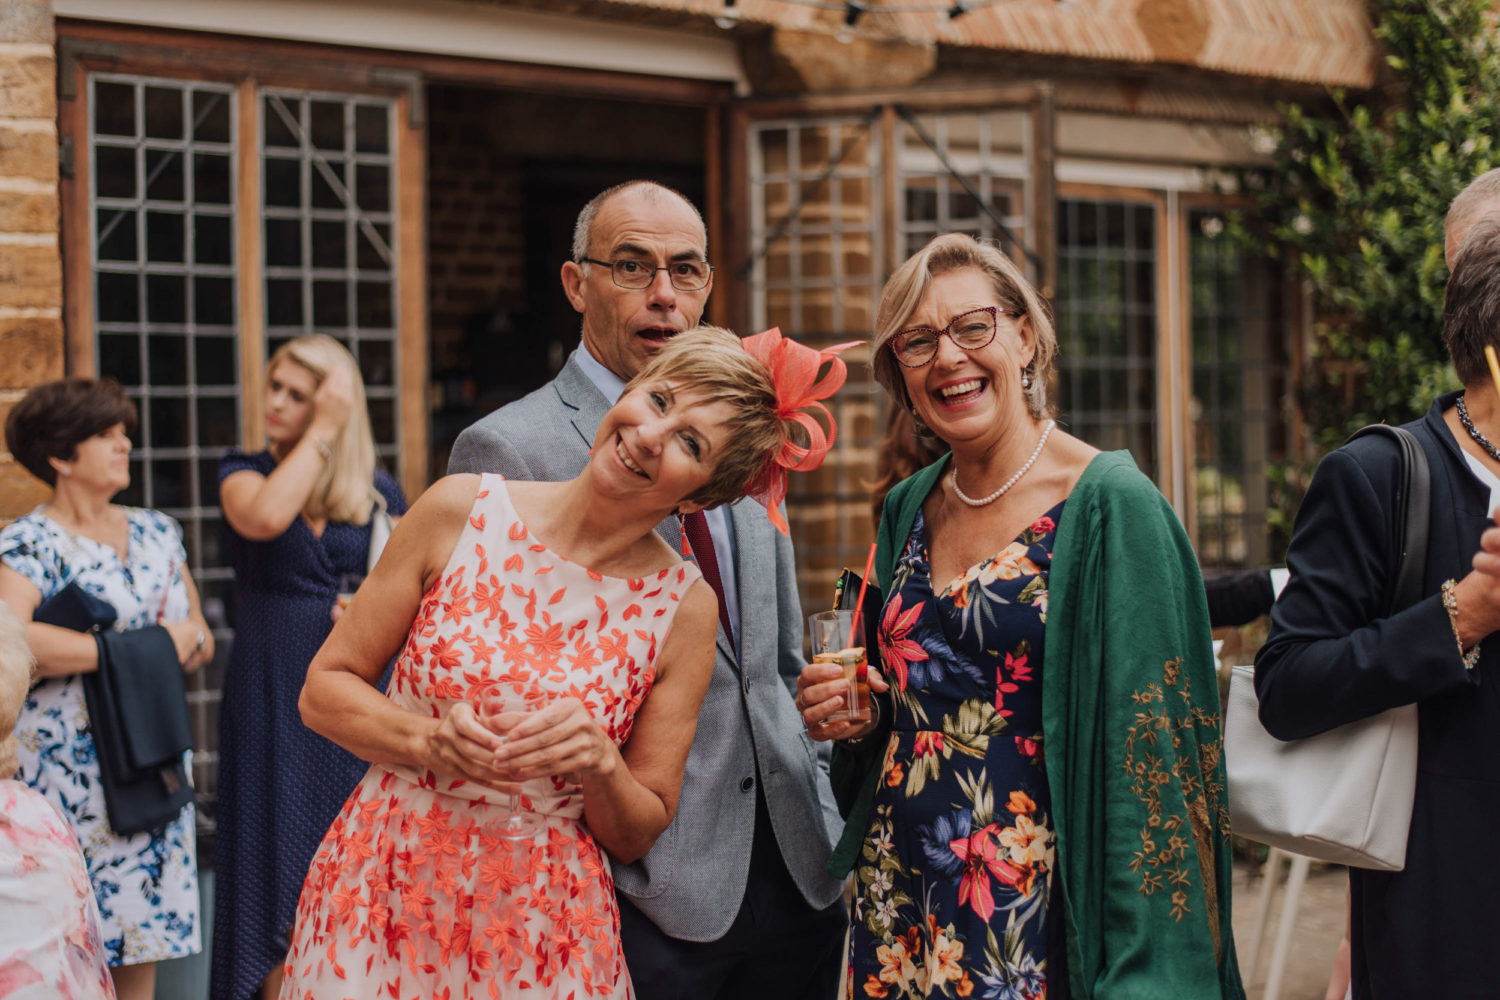 Norfolk_wedding_photos_Megan_Duffield_268